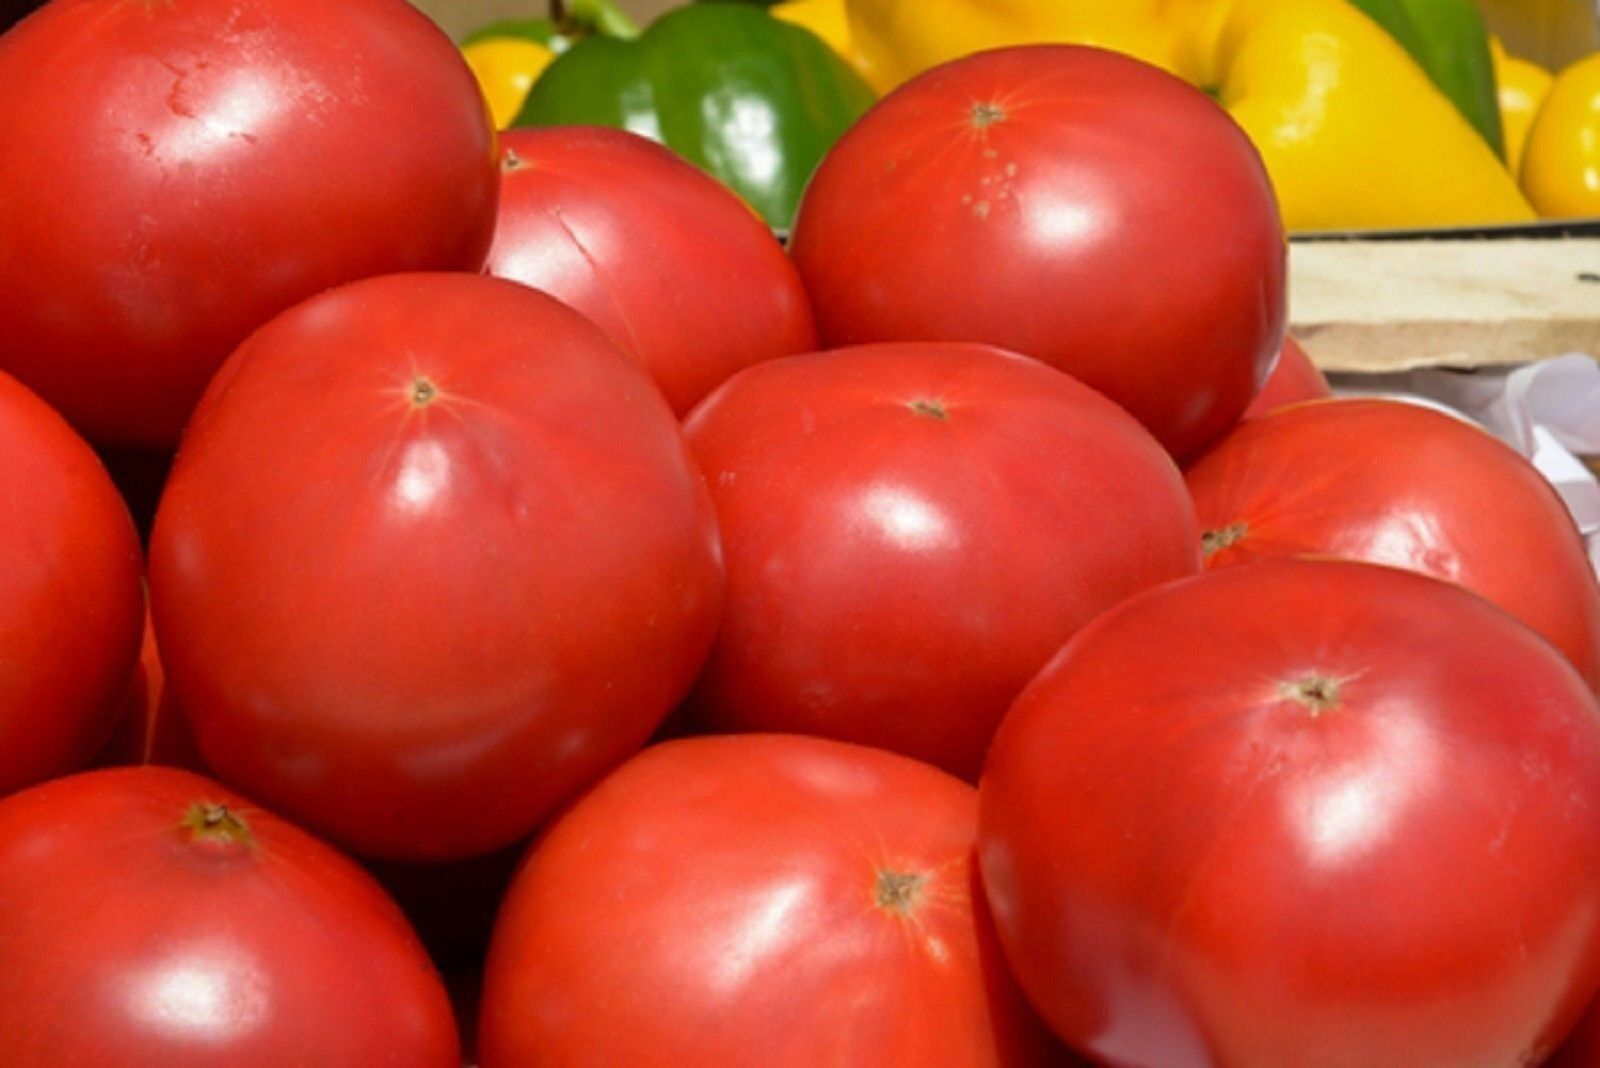 Tomato Rutgers VF Jersey Slicer Non GMO Heirloom Vegetable Seeds Sow No GMO® USA - $1.97 - $3.95